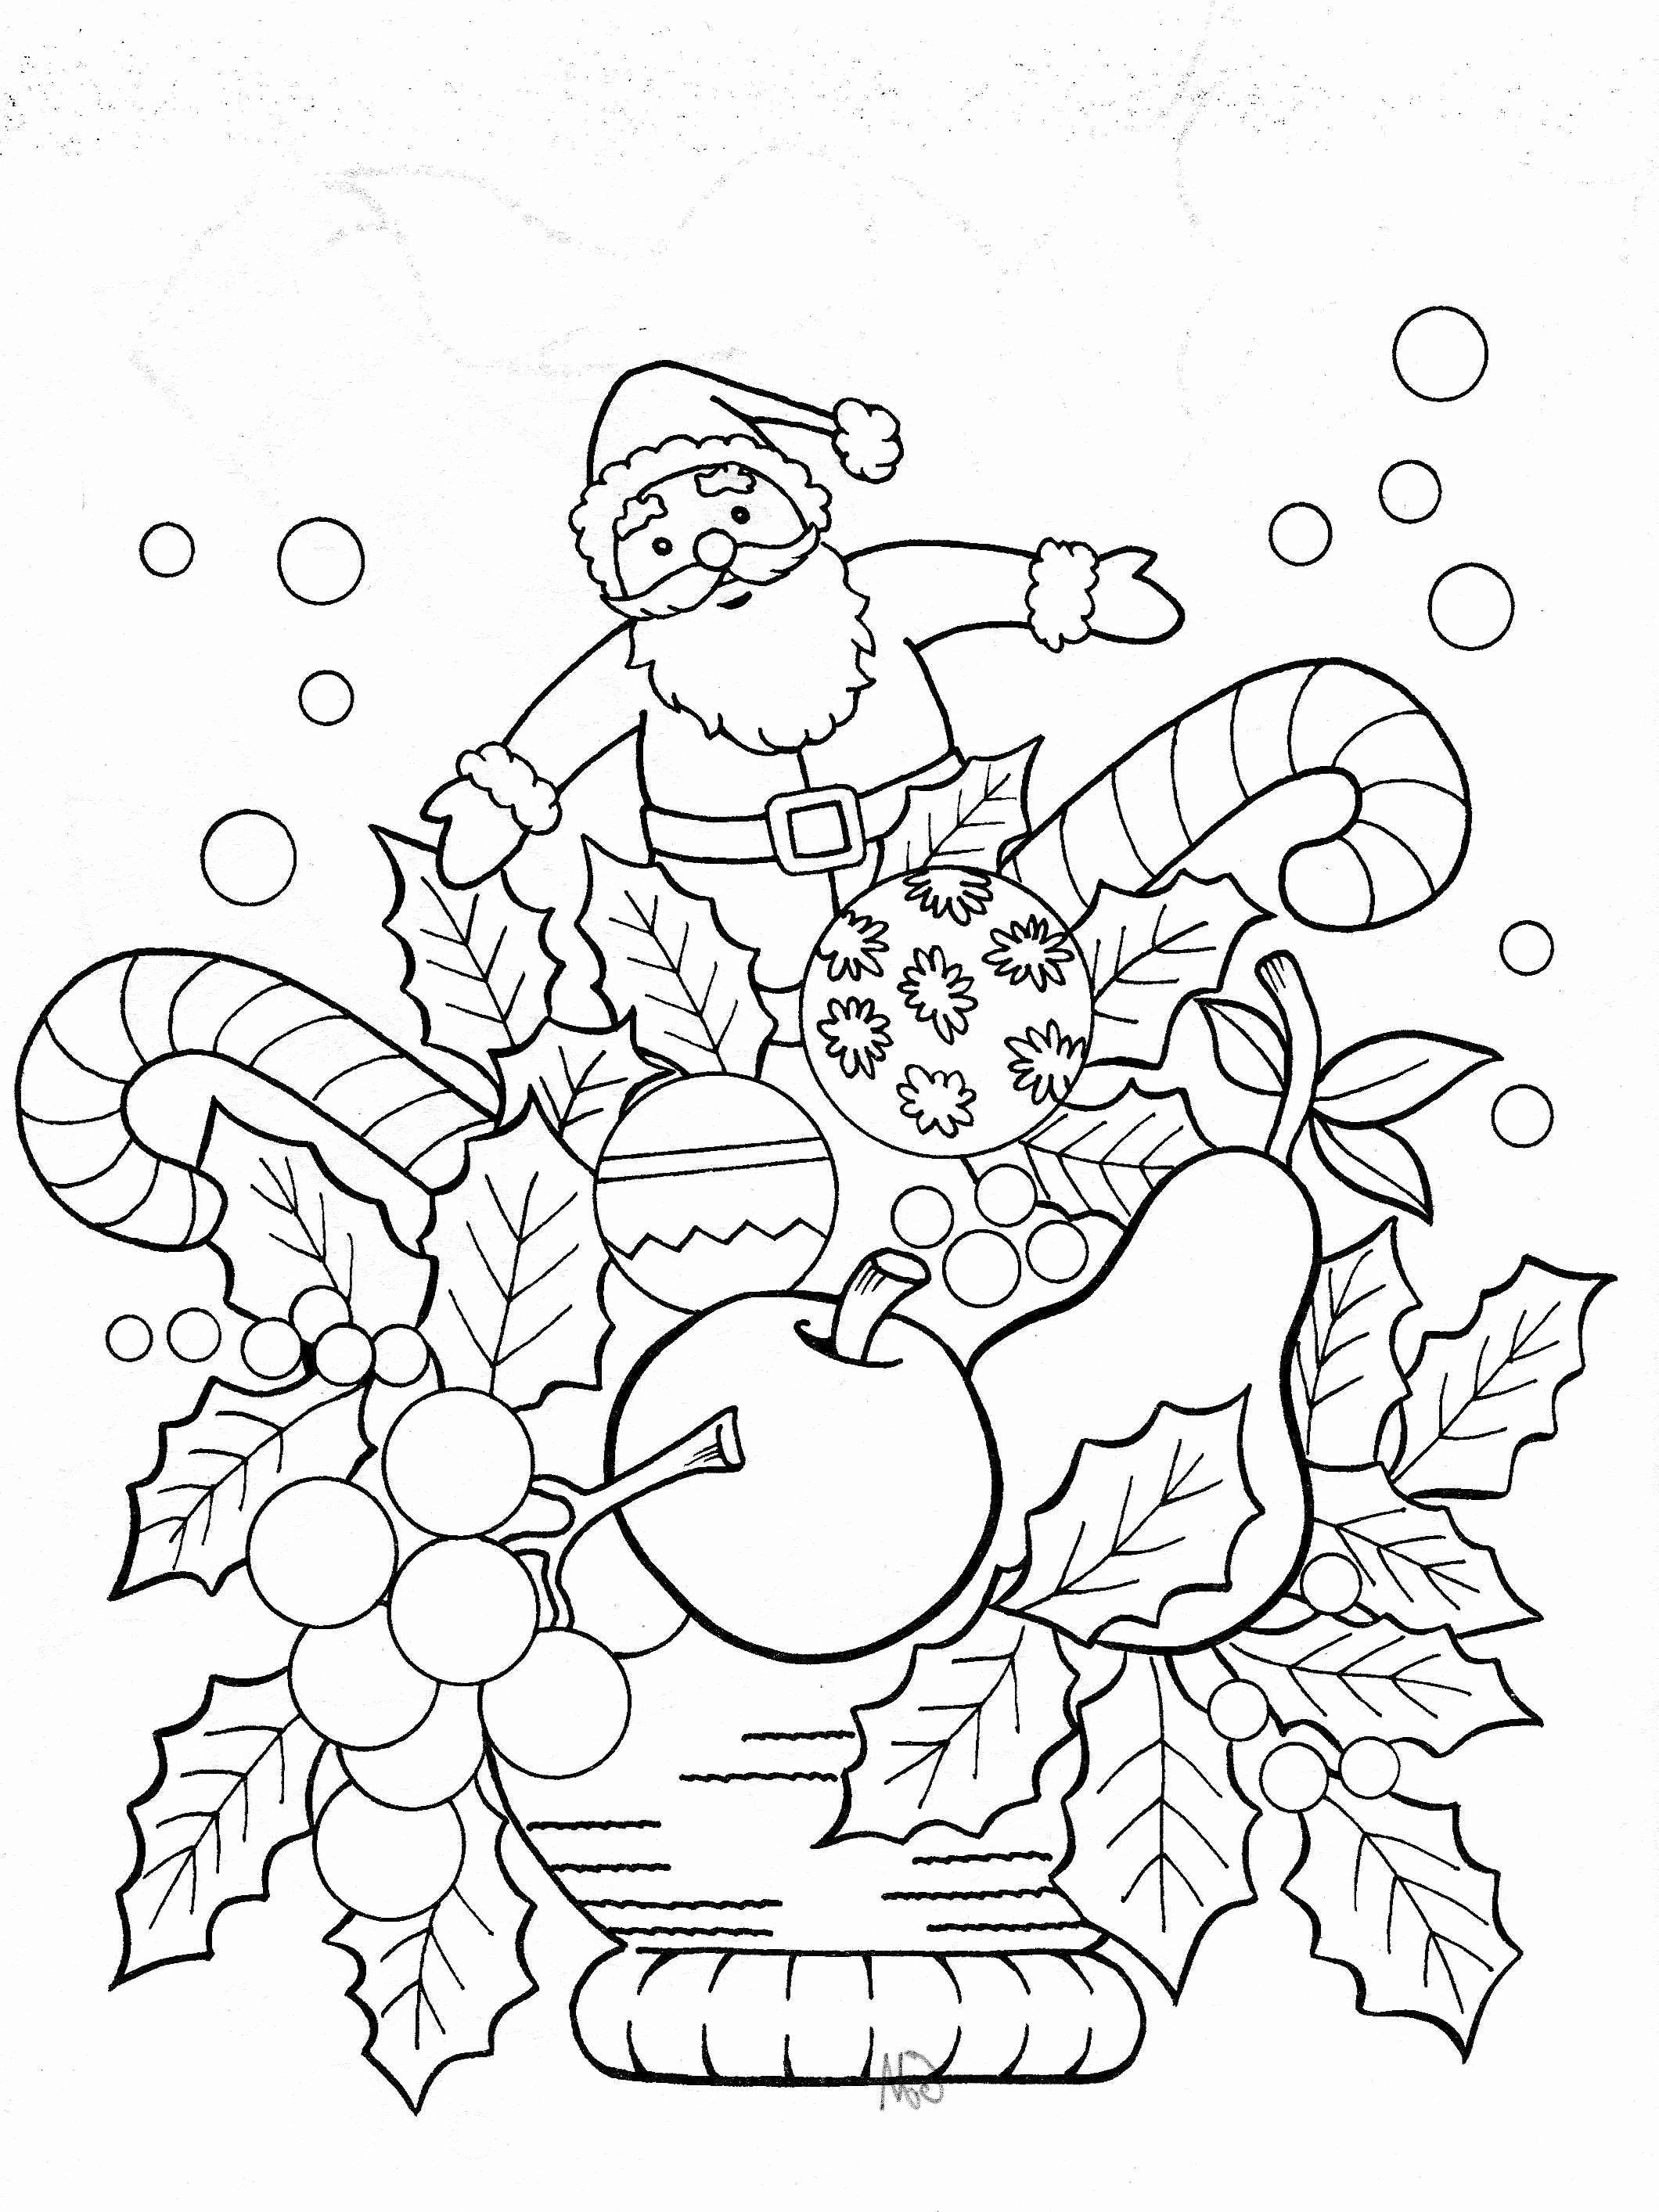 - Free Downloadable Coloring Sheets